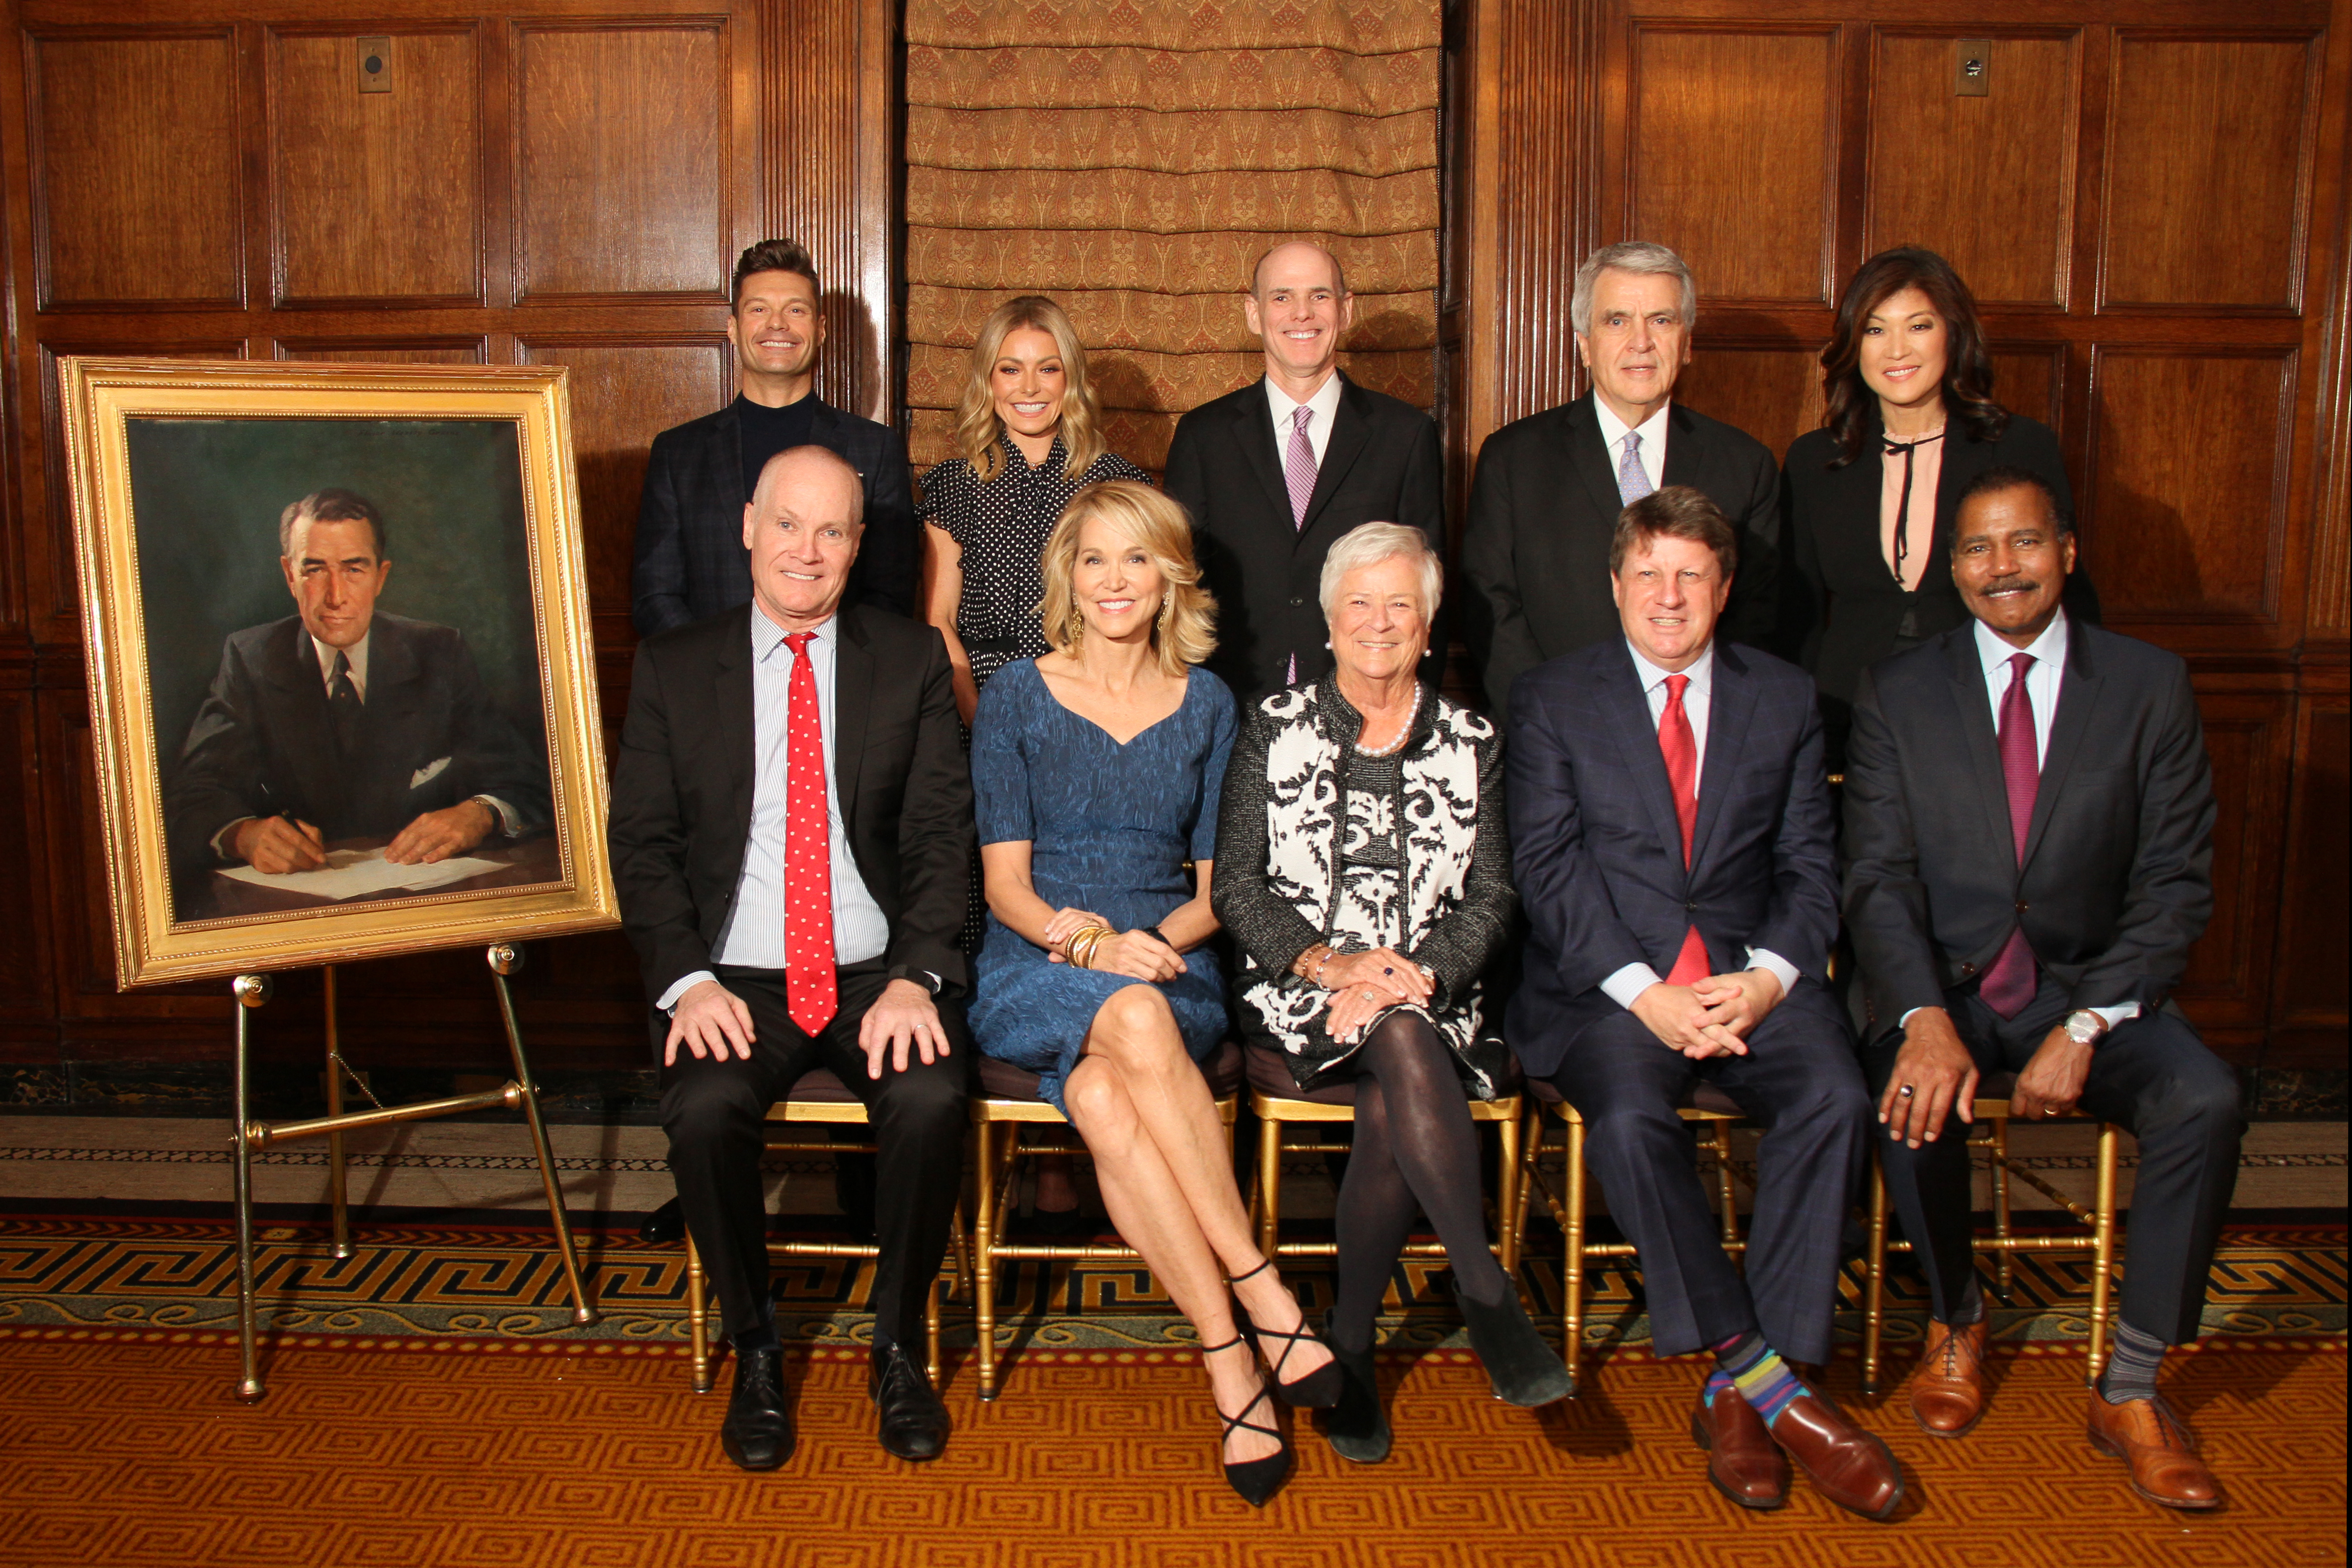 2018 Giants of Broadcasting honorees group shot